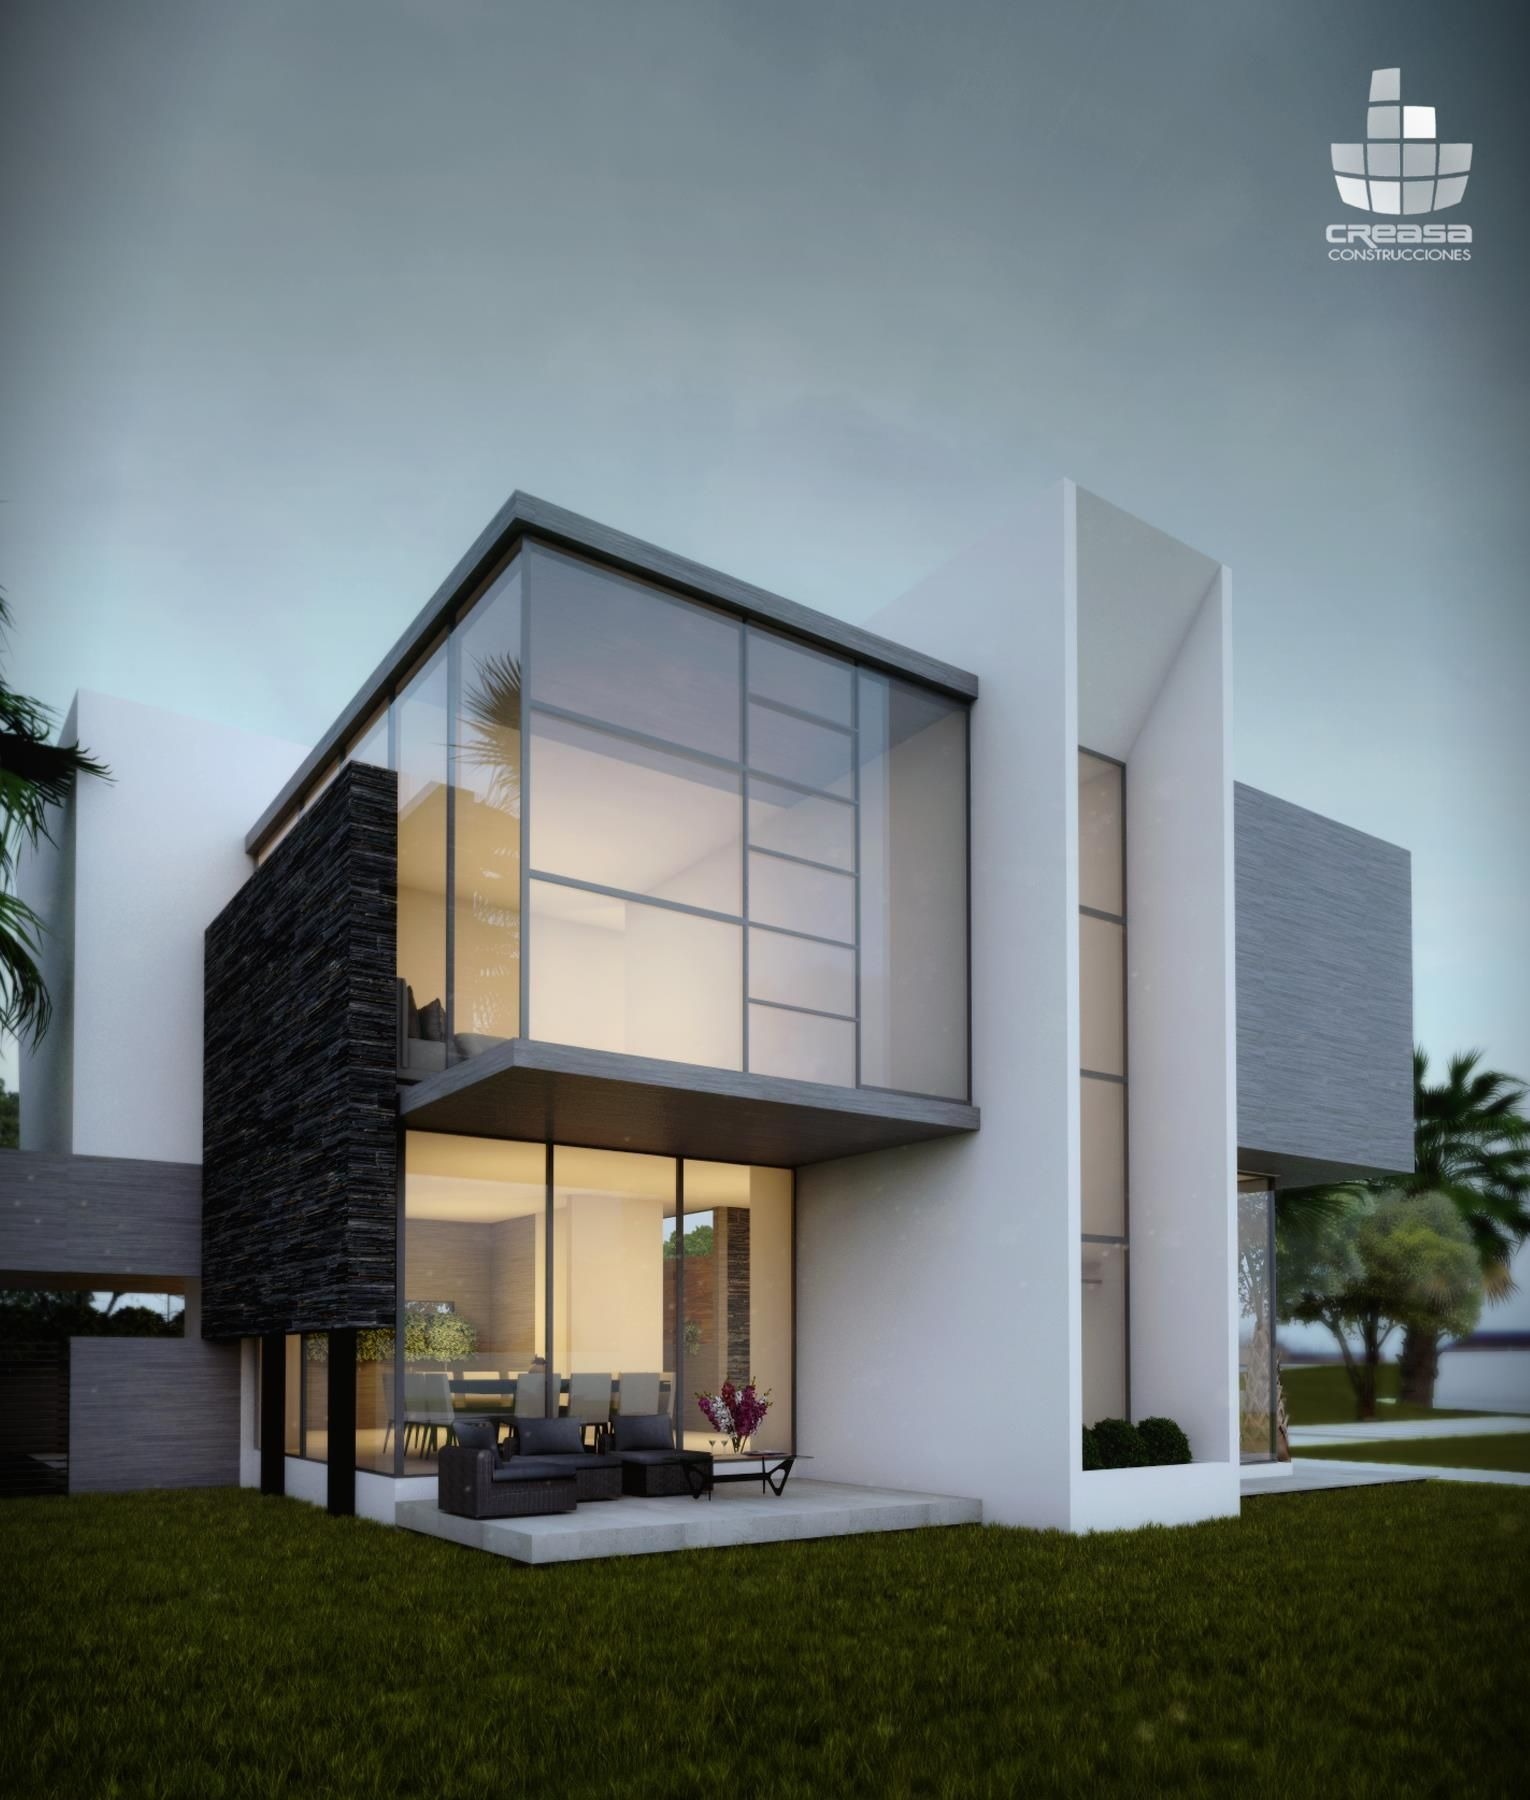 creasa modern architecture pinterest villas house